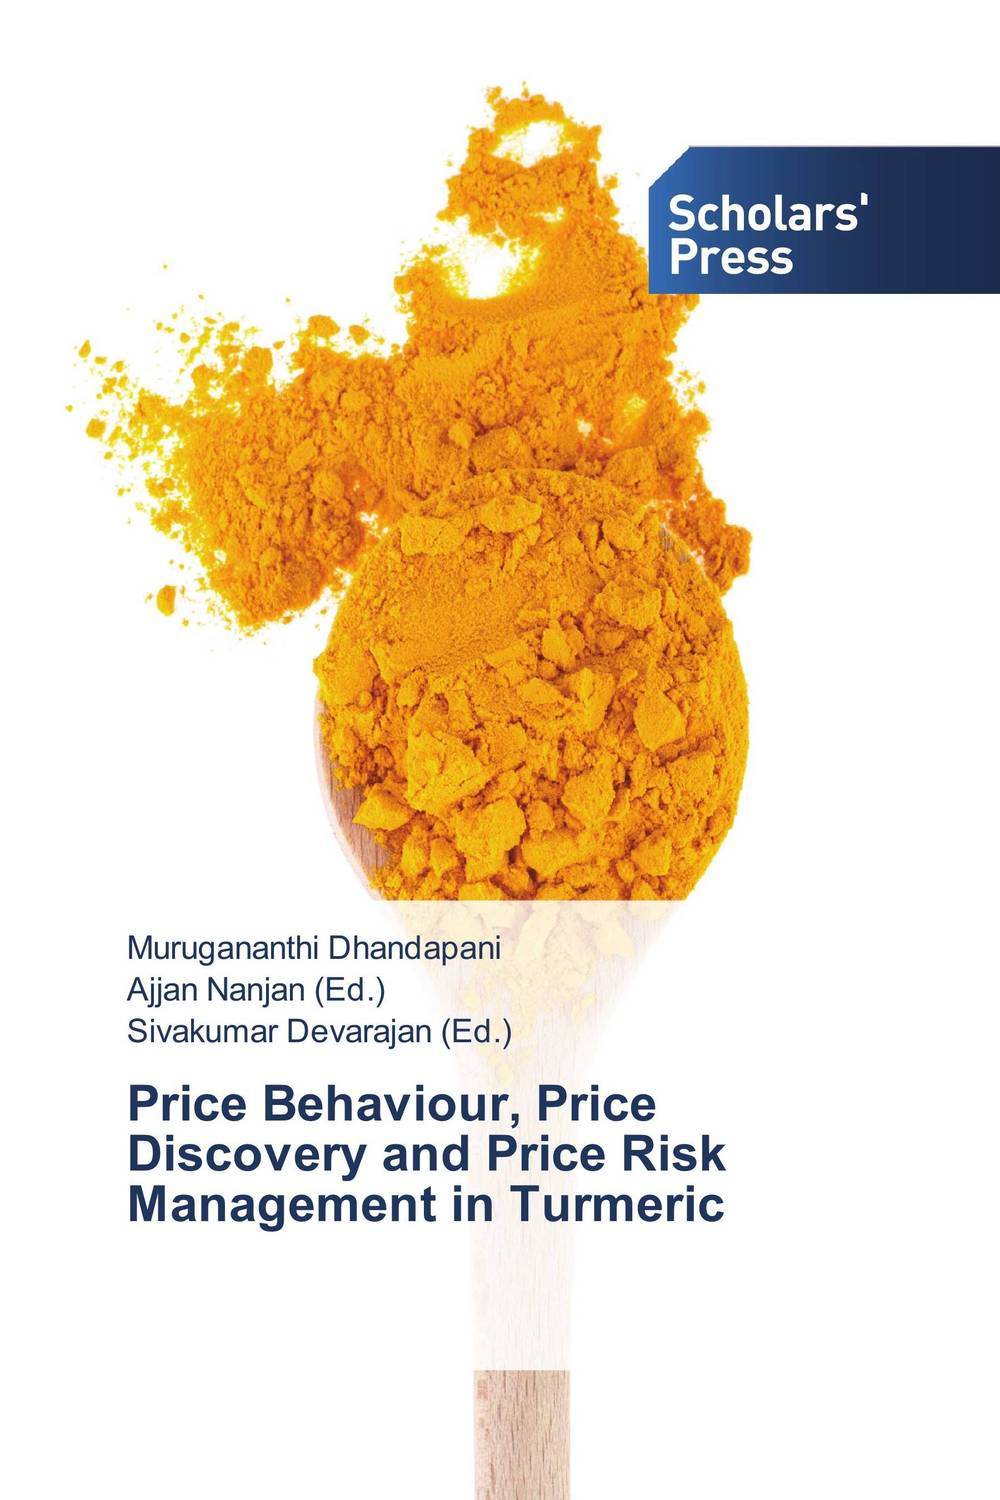 Price Behaviour, Price Discovery and Price Risk Management in Turmeric купить